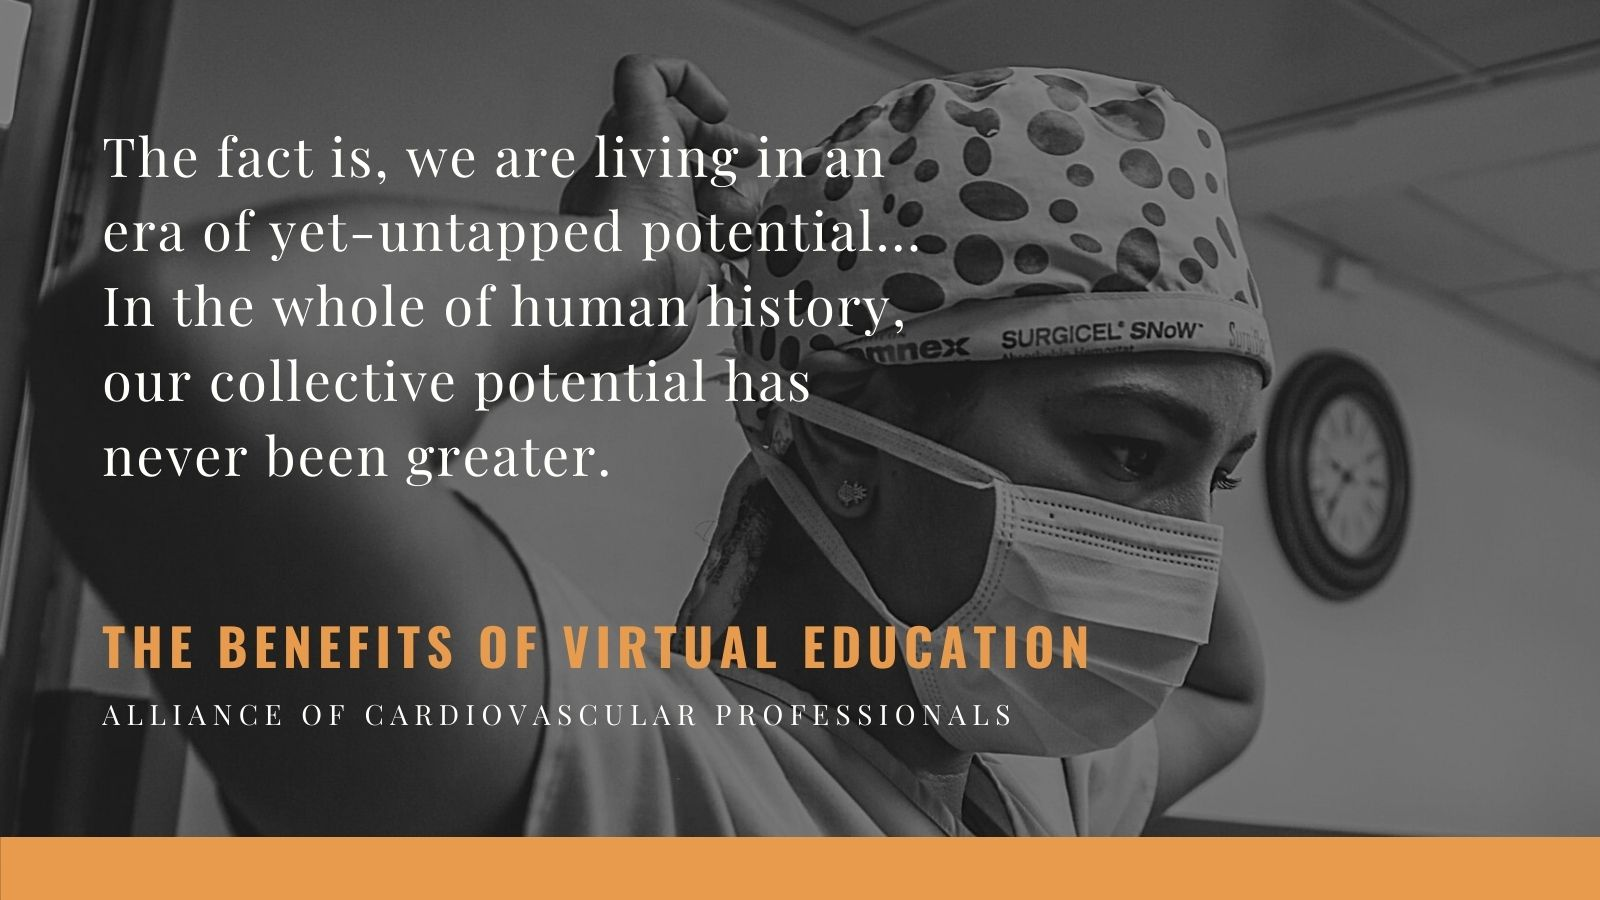 """The fact is, we are living in an era of yet-untapped potential... In the whole of human history, our collective potential has never been greater."" The benefits of virtual continuing education for cardiac RNs and technologists. ACVP"